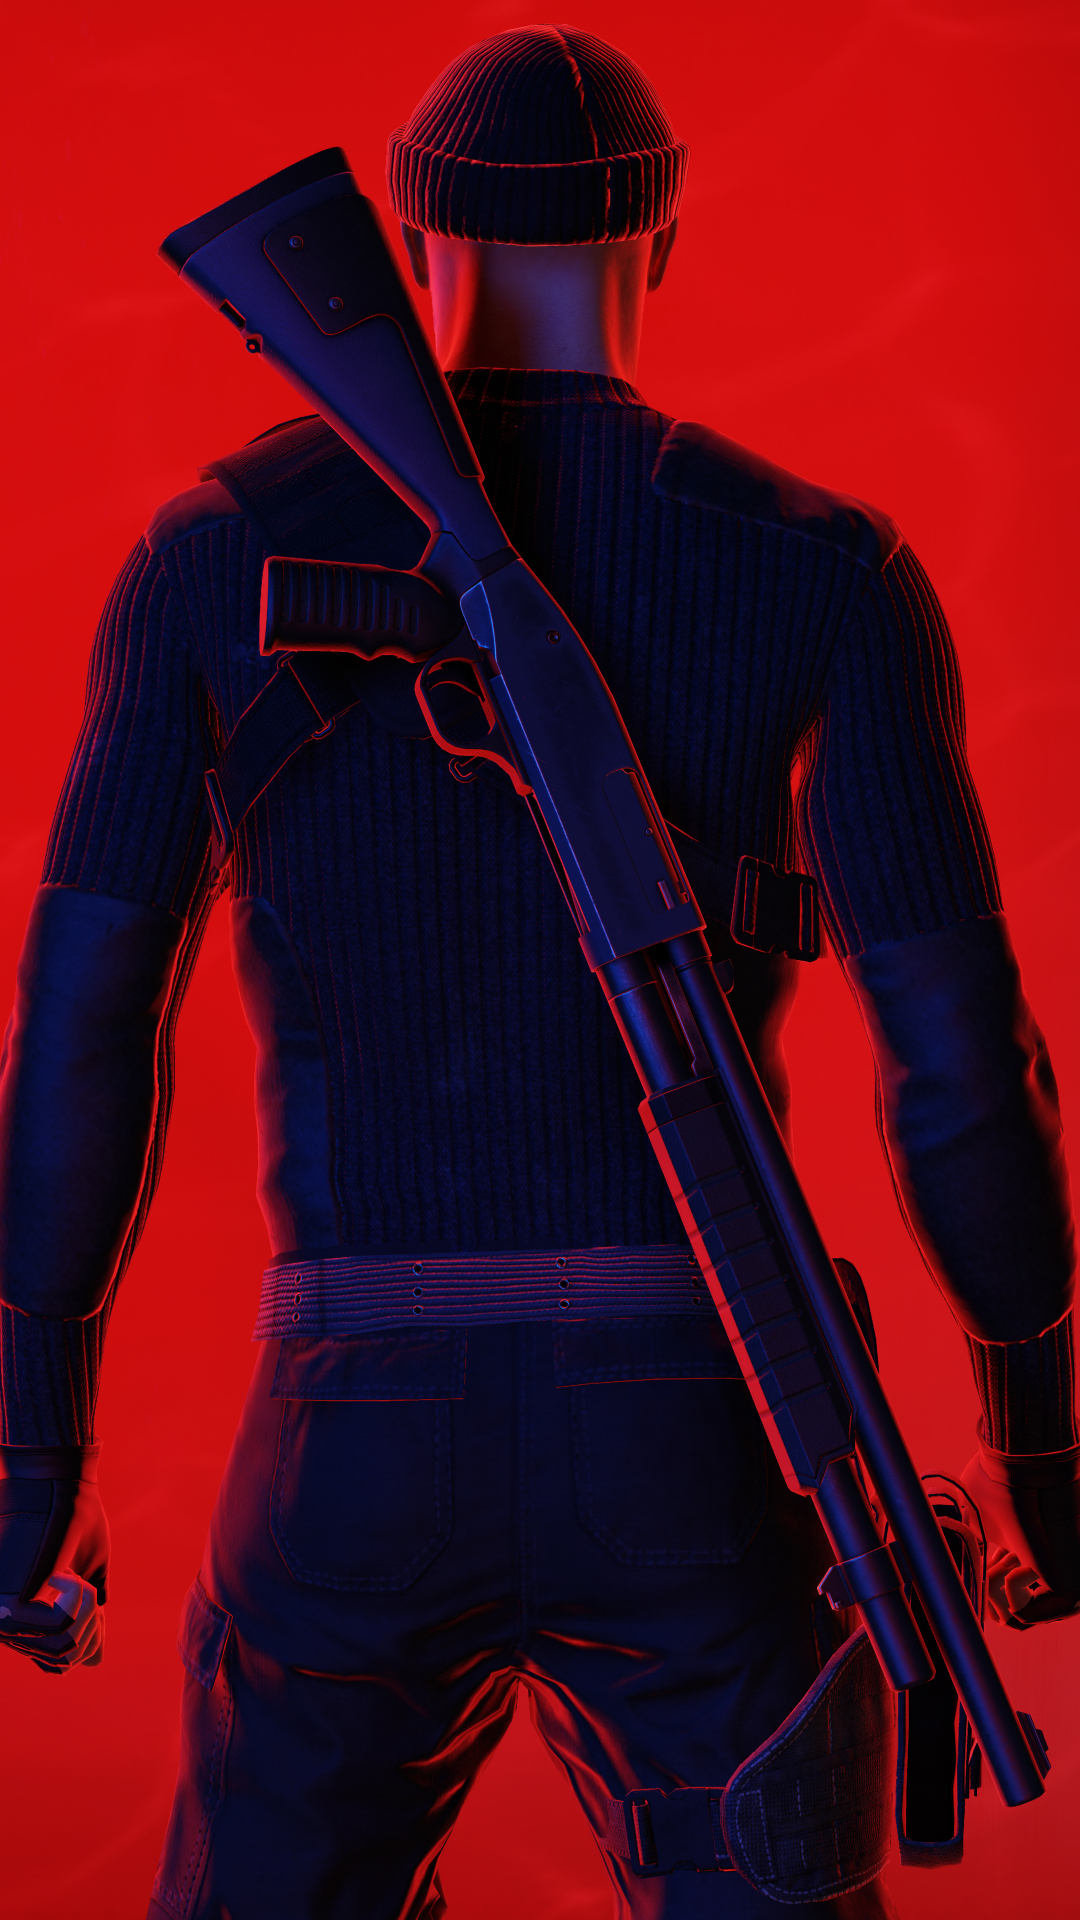 1080x1920 Agent 47 Hitman 2 Iphone 7 6s 6 Plus And Pixel Xl One